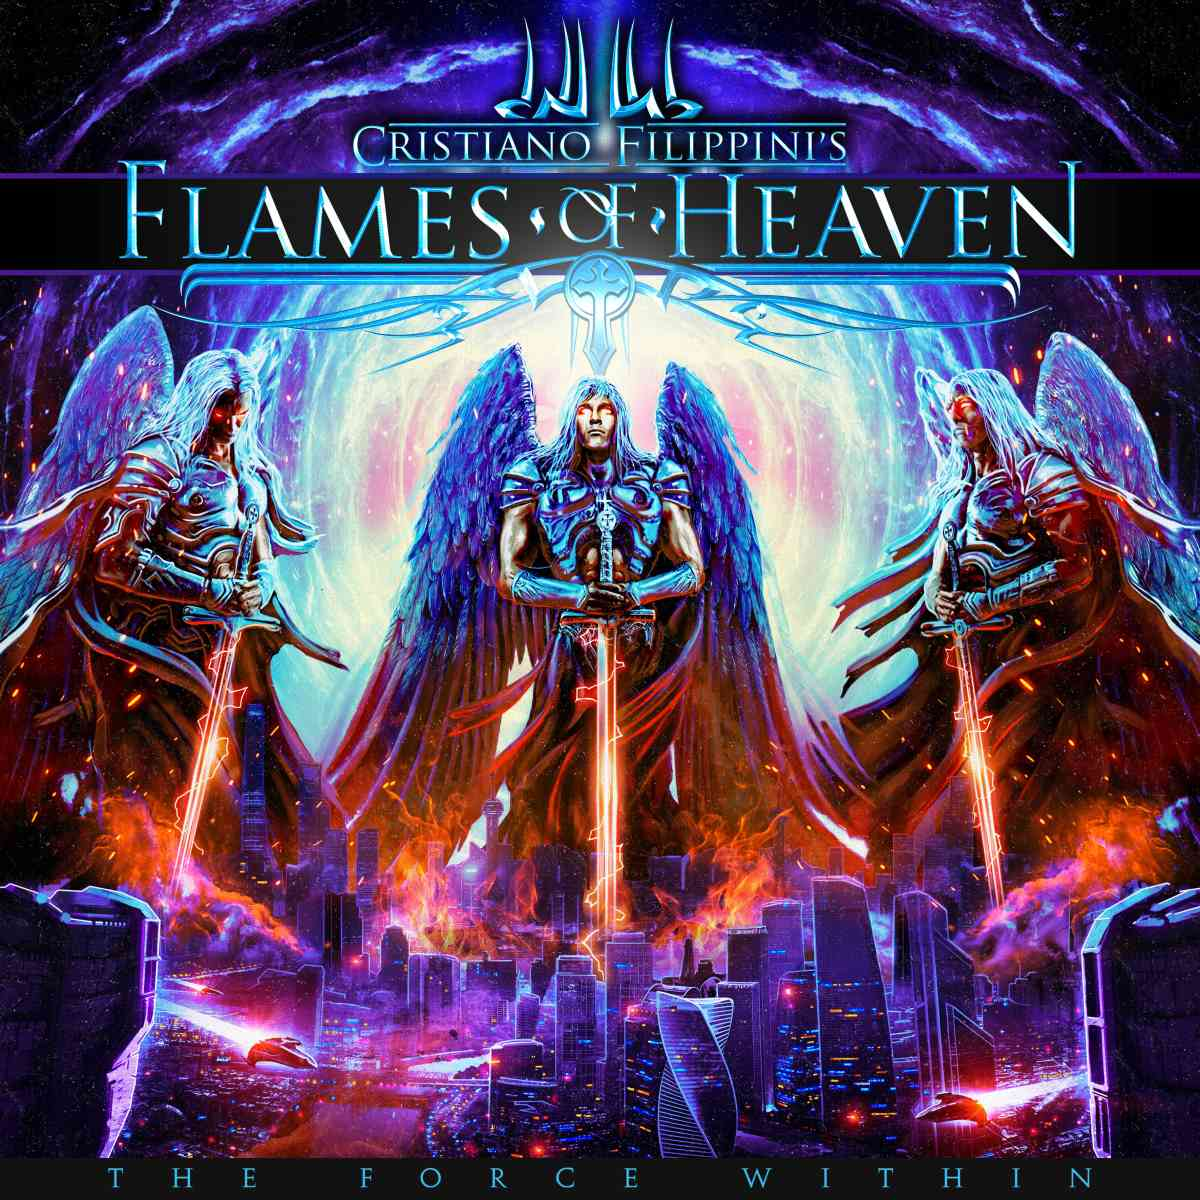 Cristiano Filippinis FLAMES OF HEAVEN - The Force Within - album cover